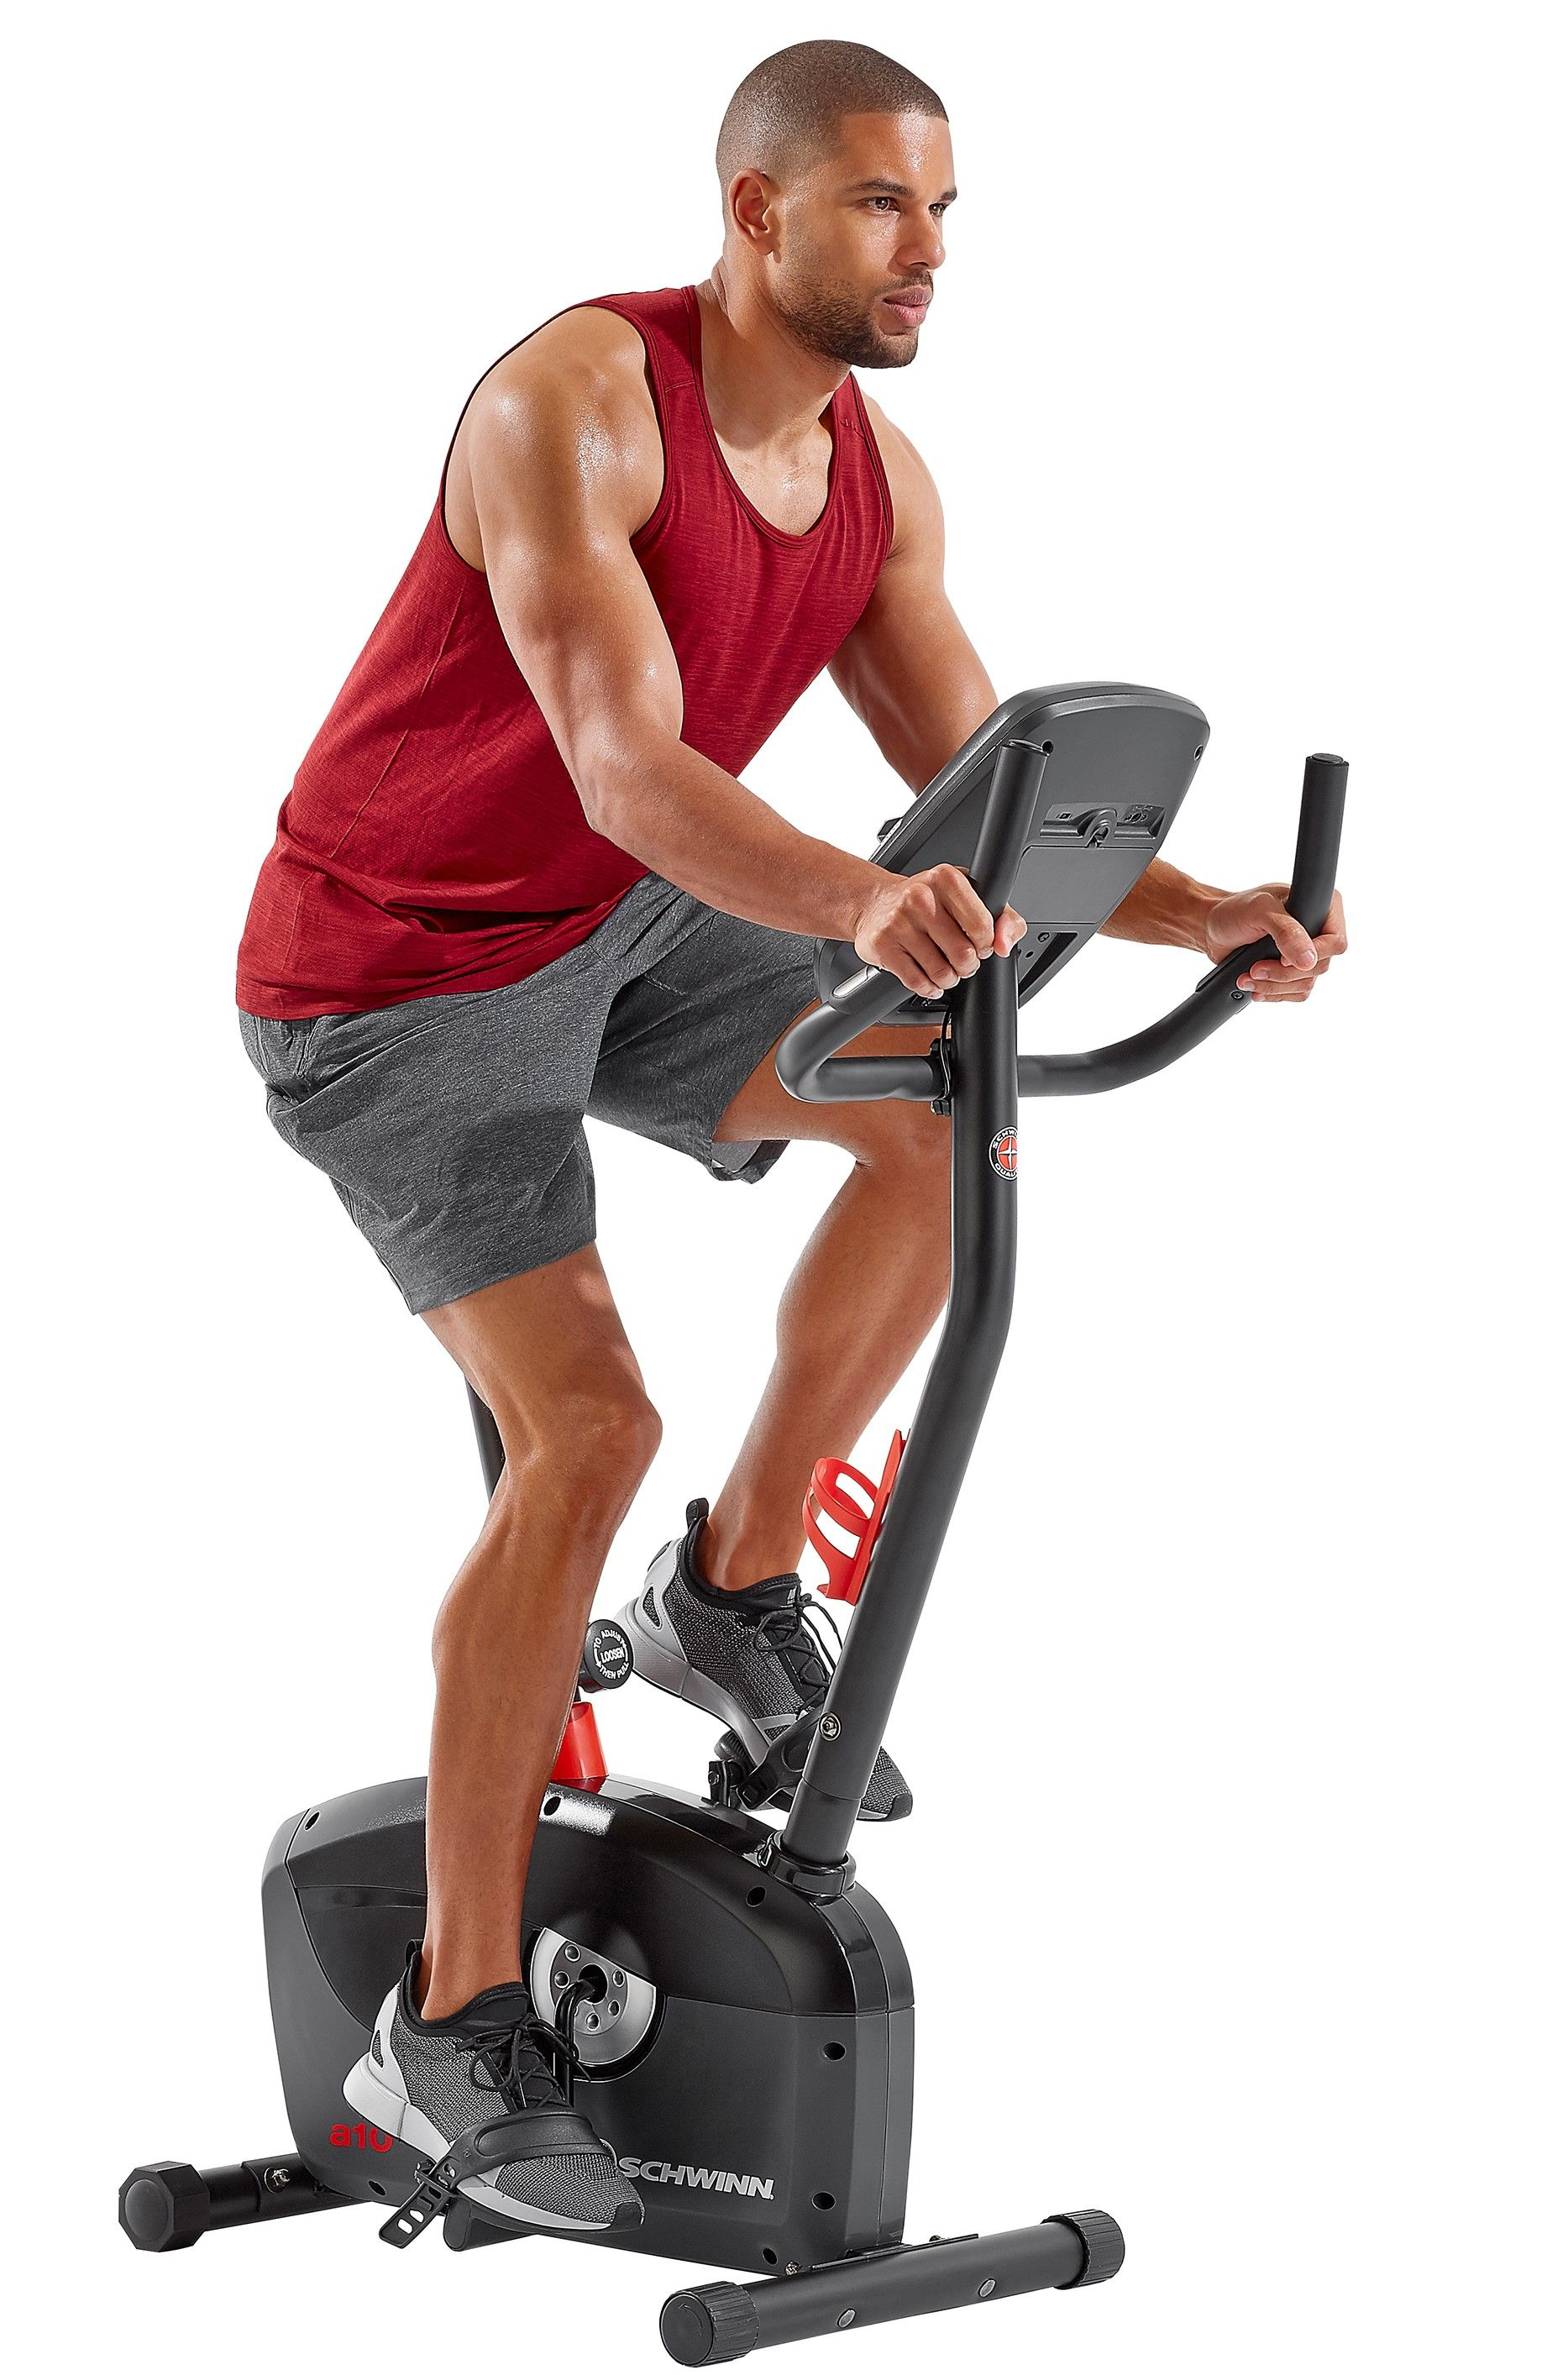 Schwinn A10 Heart Rate Enabled Upright Bike With 7 Workout